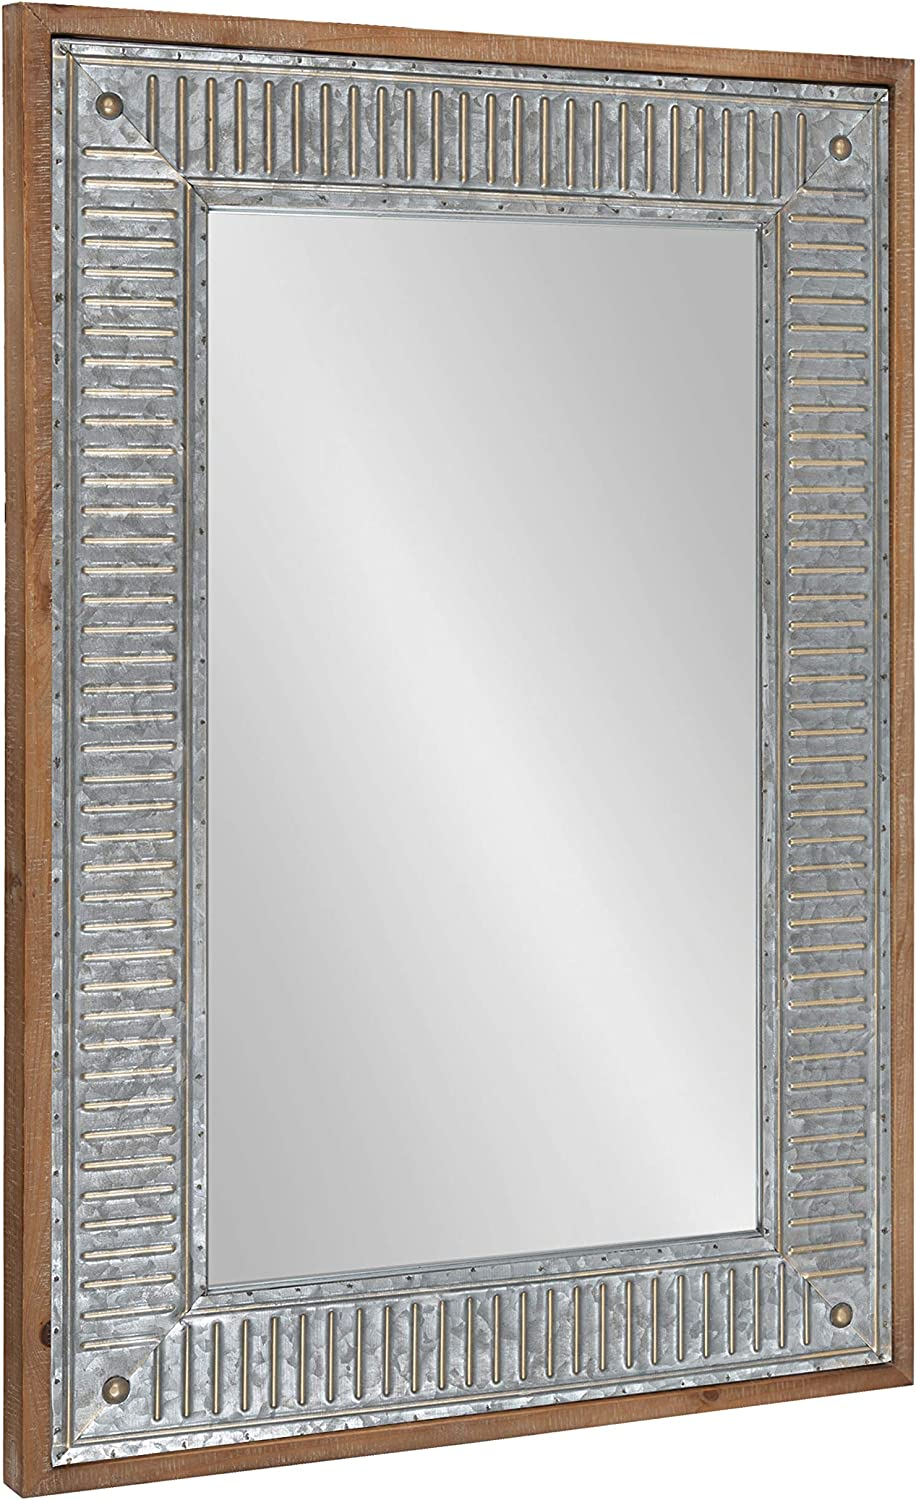 Kate and Laurel Deely Farmhouse Wall Mirror, 20 x 30, Rustic Brown and Silver, Rustic Wall Decor with Galvanized Metal Frame